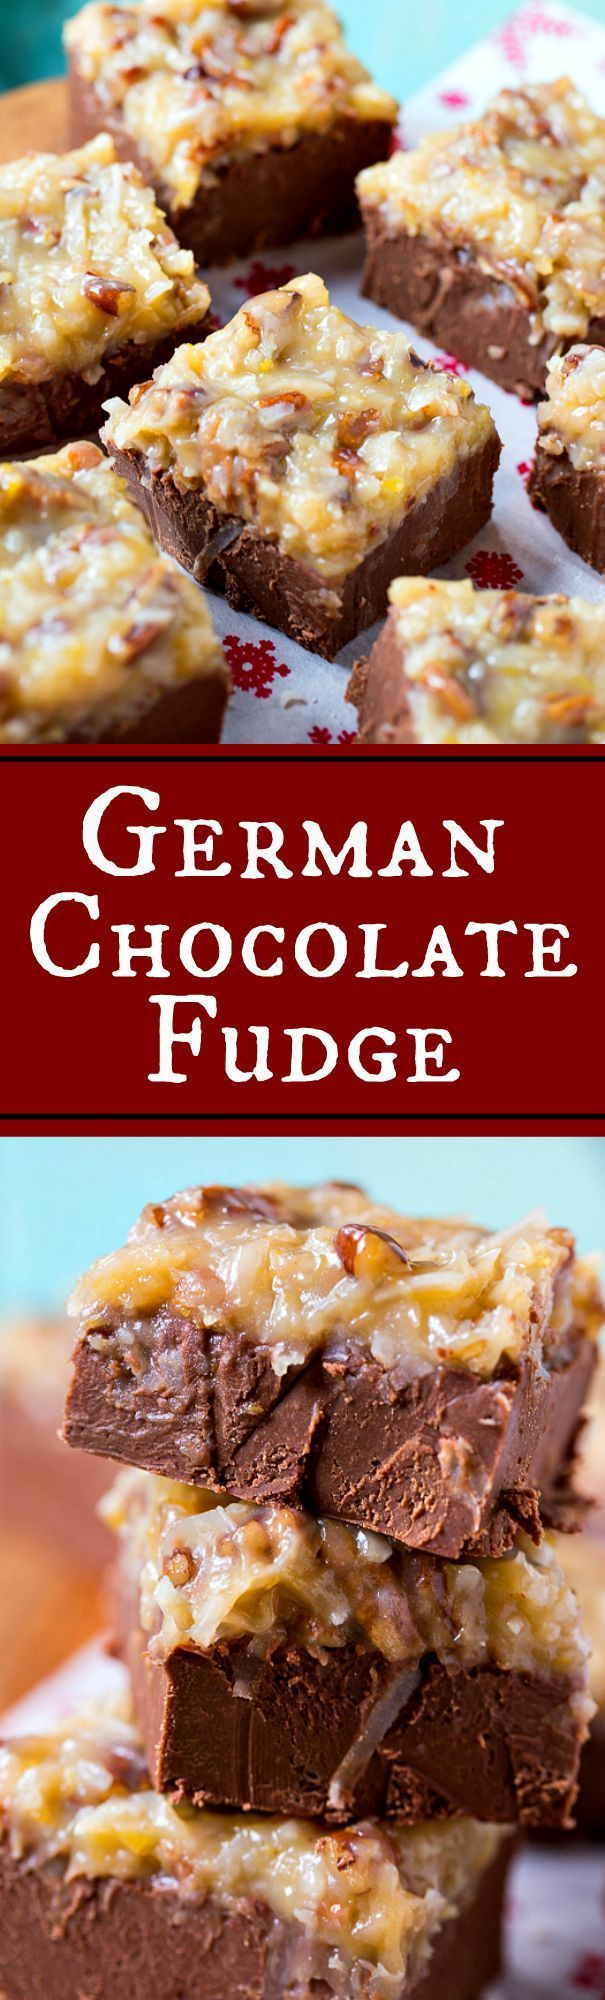 German Chocolate Fudge Recipe ~ melt-in-your-mouth chocolate fudge topped with a thick layer of irresistible coconut pecan frosting. #christmasrecipes